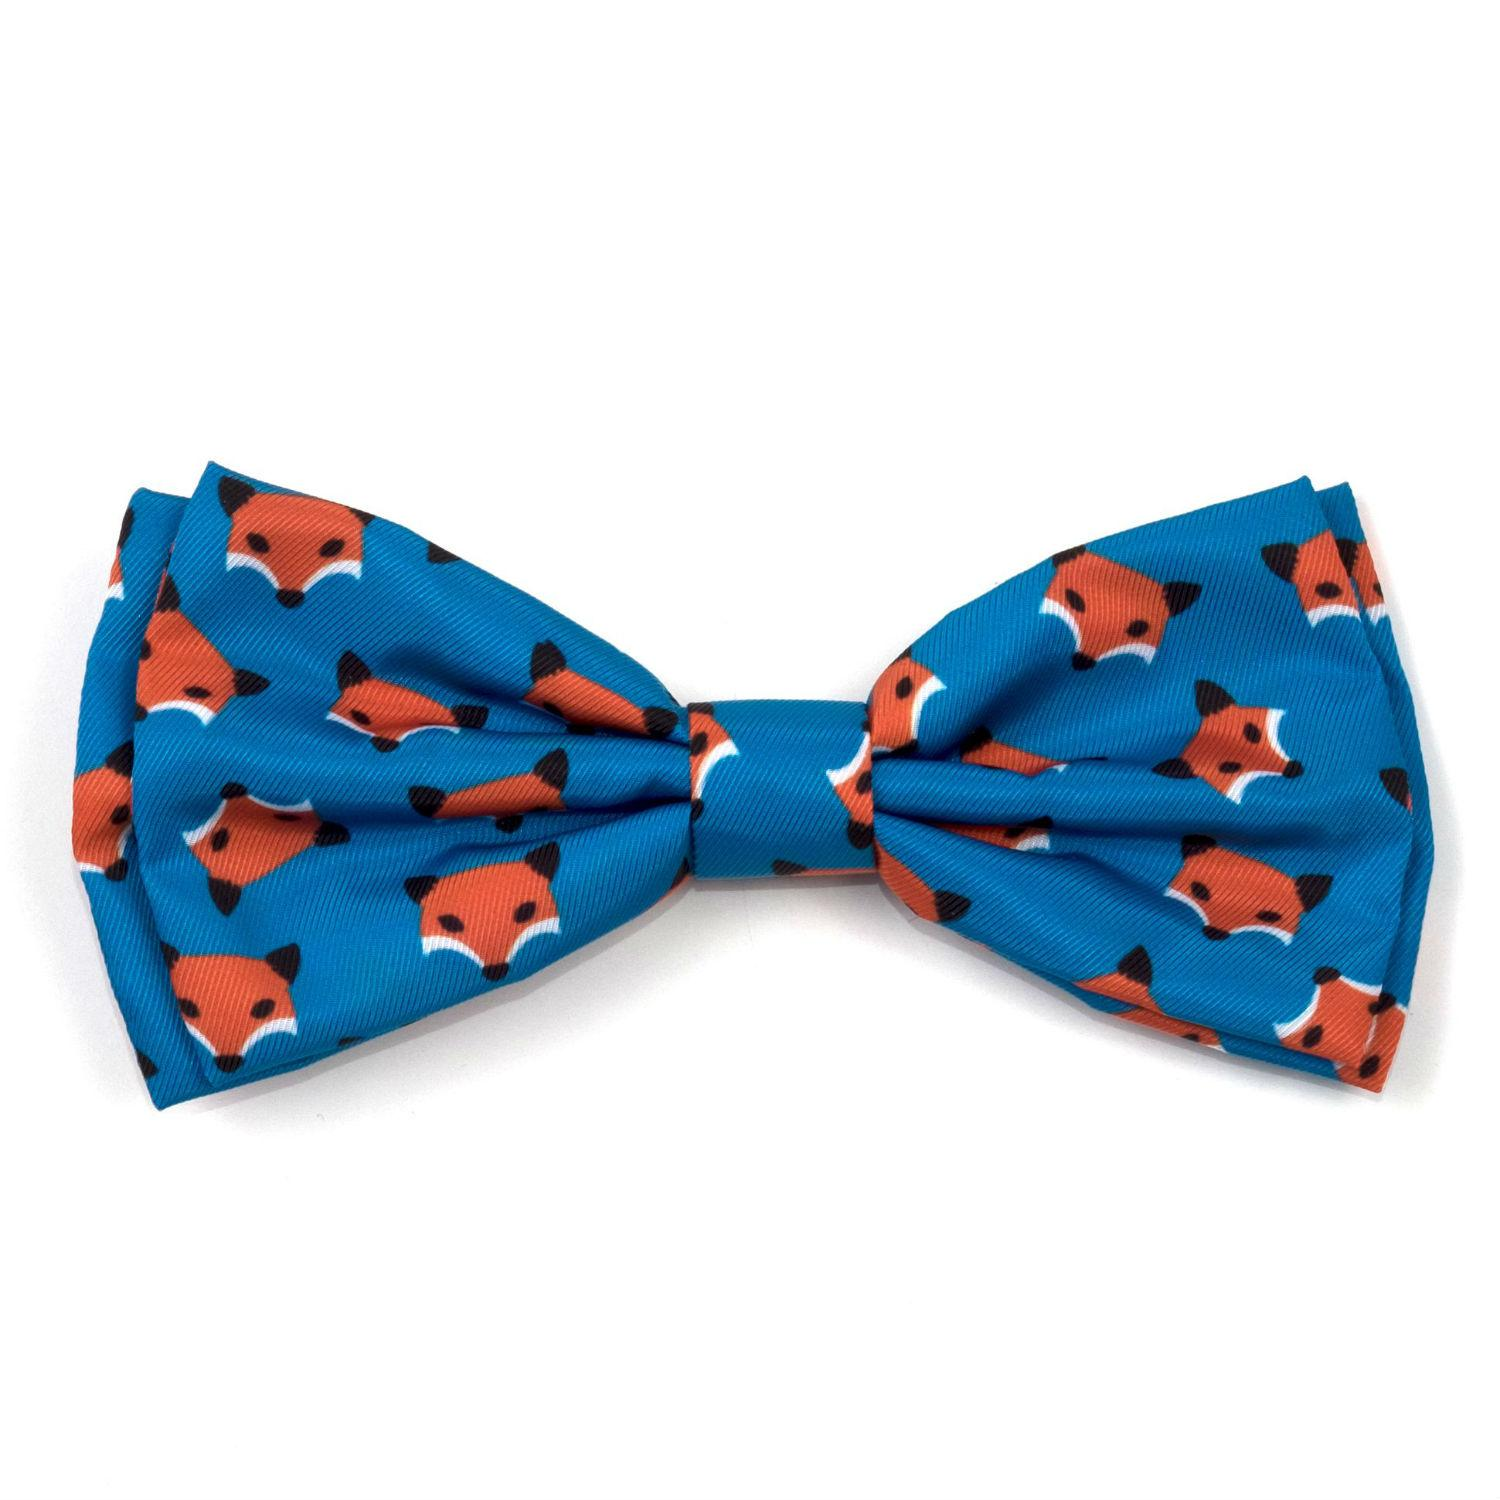 Worthy Dog Foxy Dog and Cat Bow Tie Collar Attachment